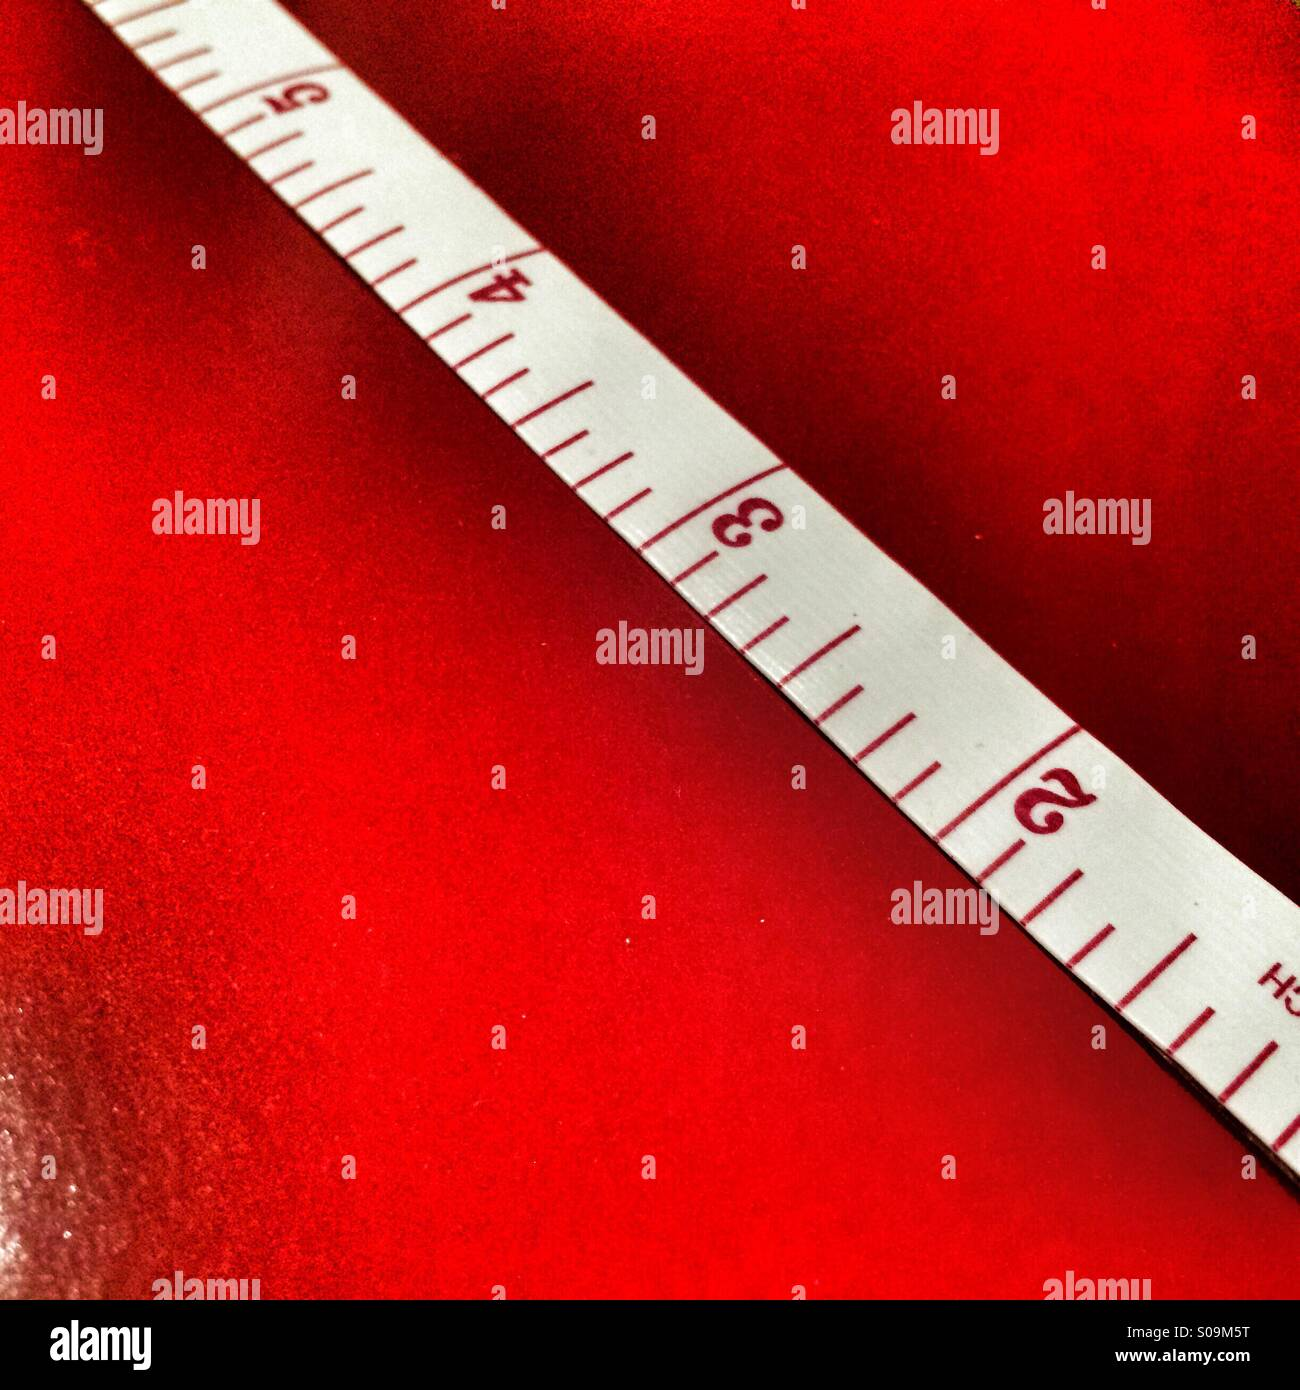 Tape measure showing inches on a red background - Stock Image